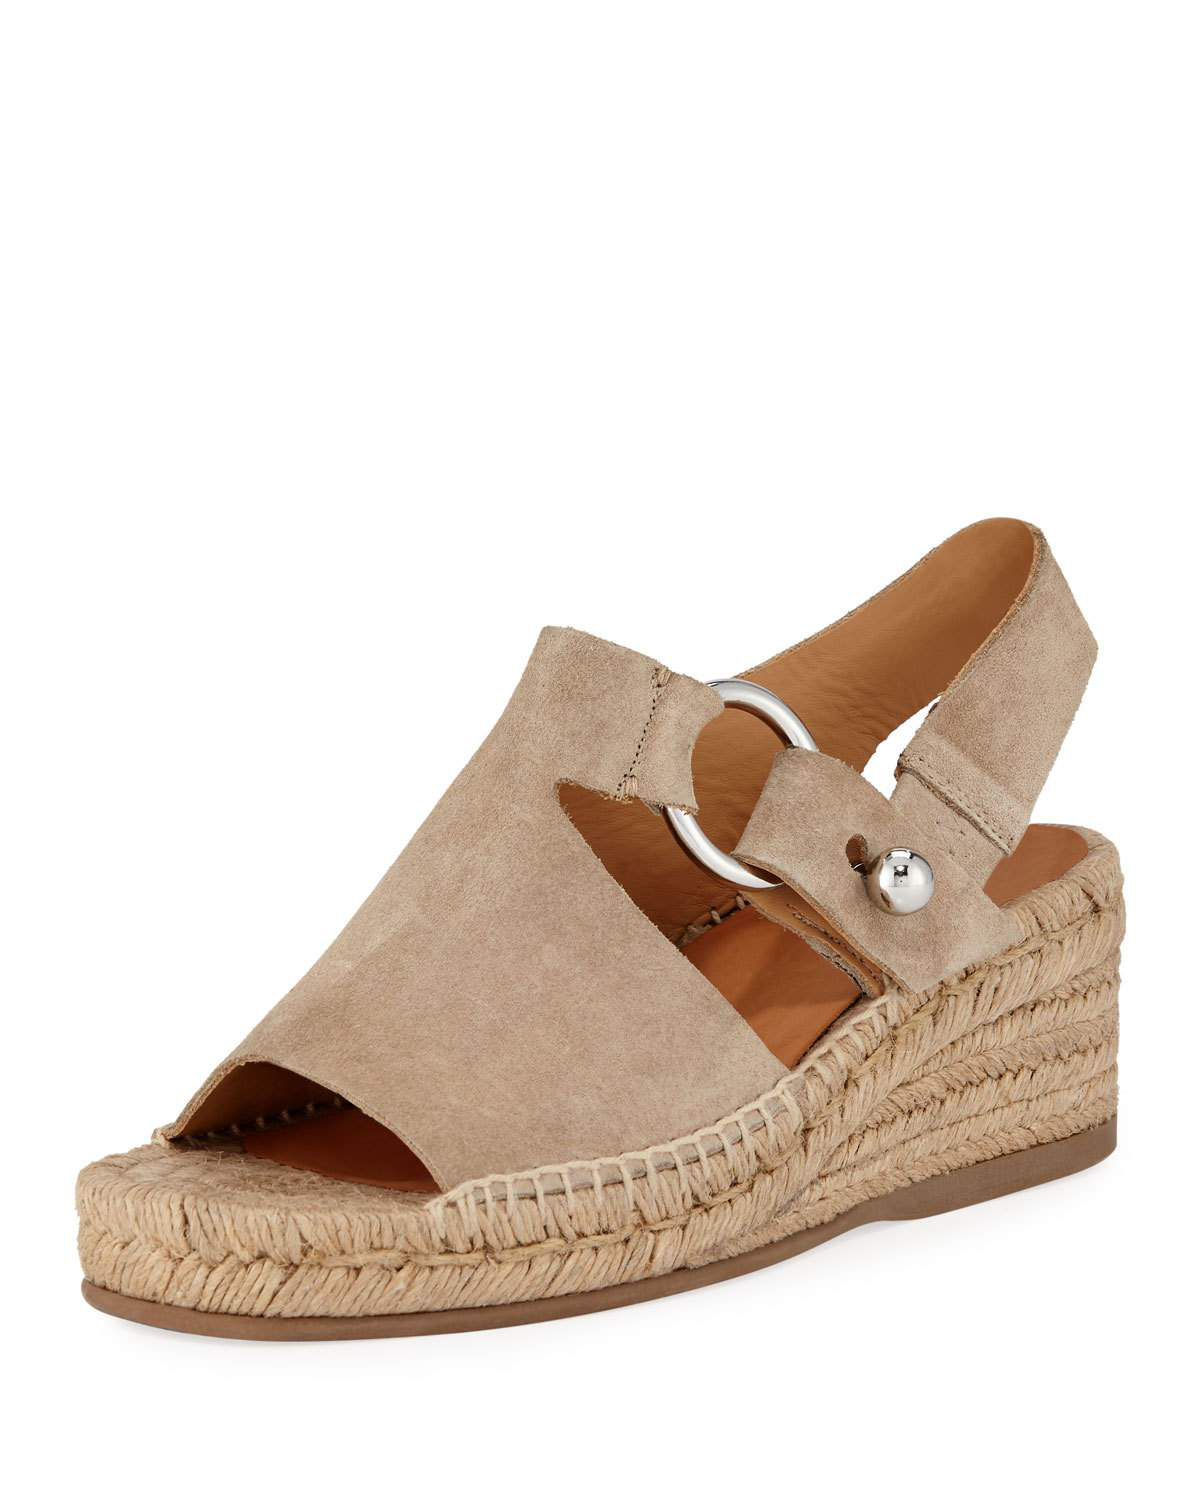 e6e02fb8b8c Rag   Bone Arc Espadrille Wedge Sandal In Light Sand